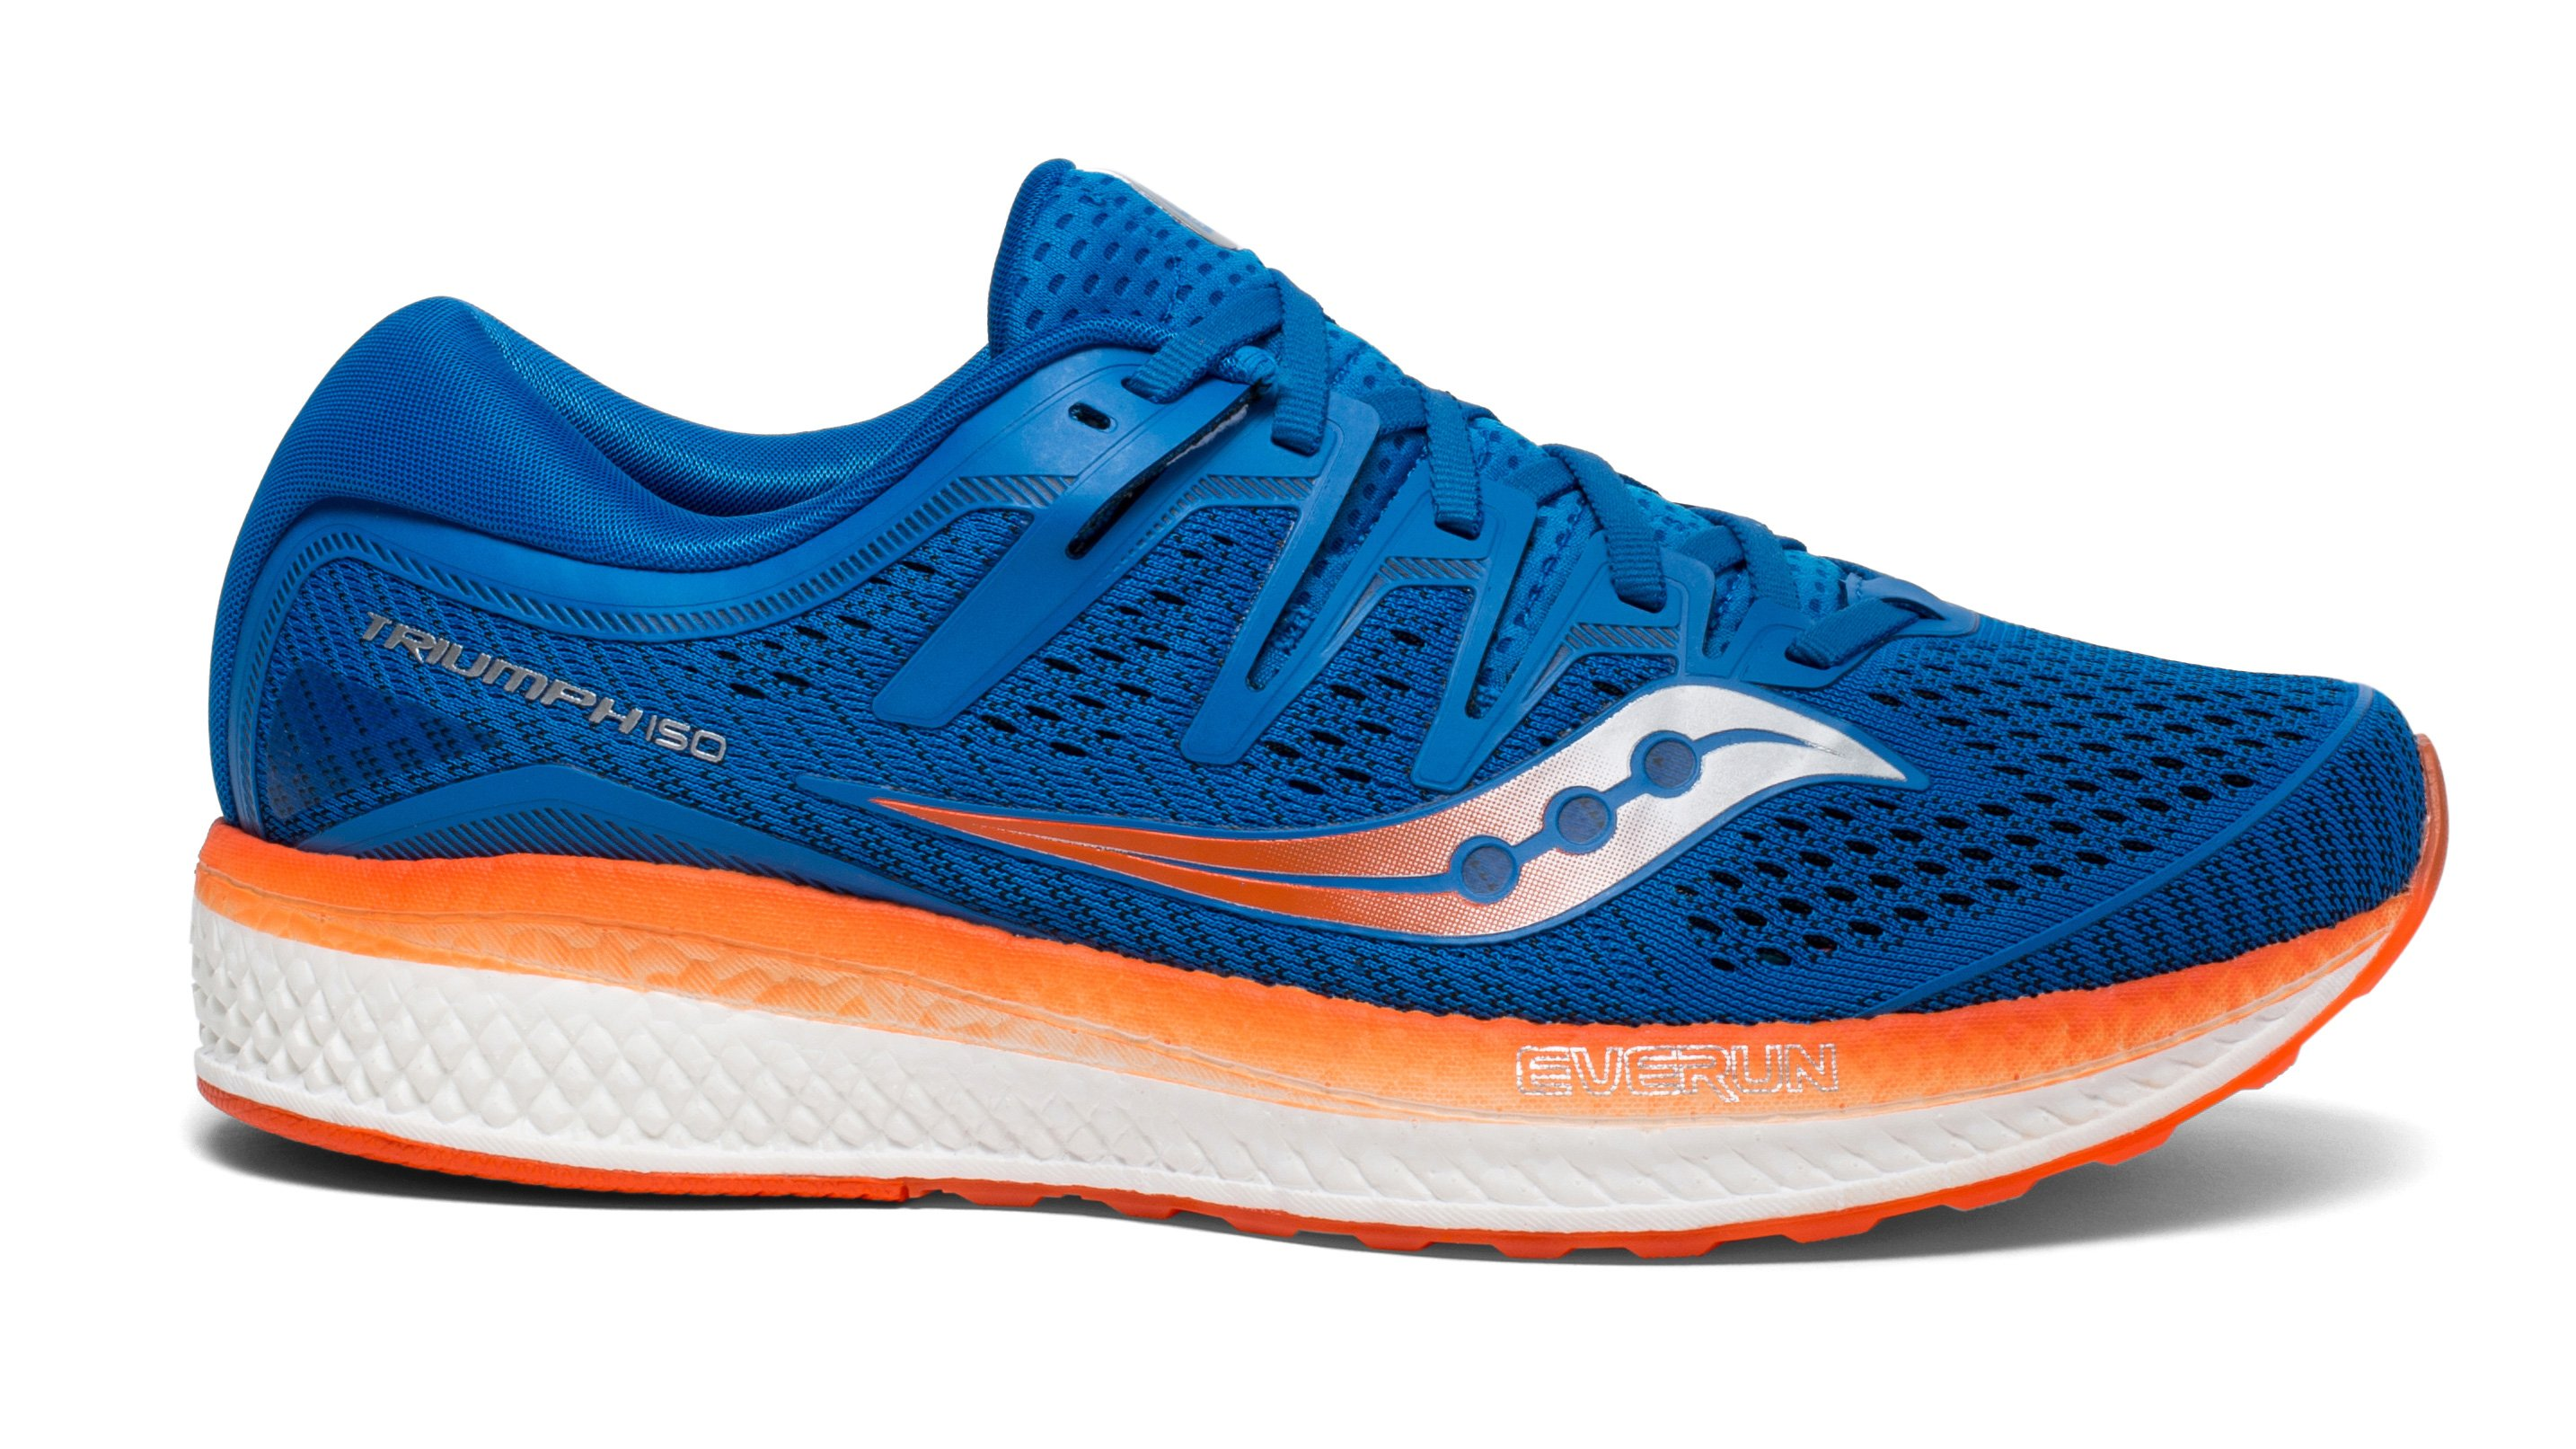 5 Best Lightweight Running Shoes: Compare, Buy & Save (2019